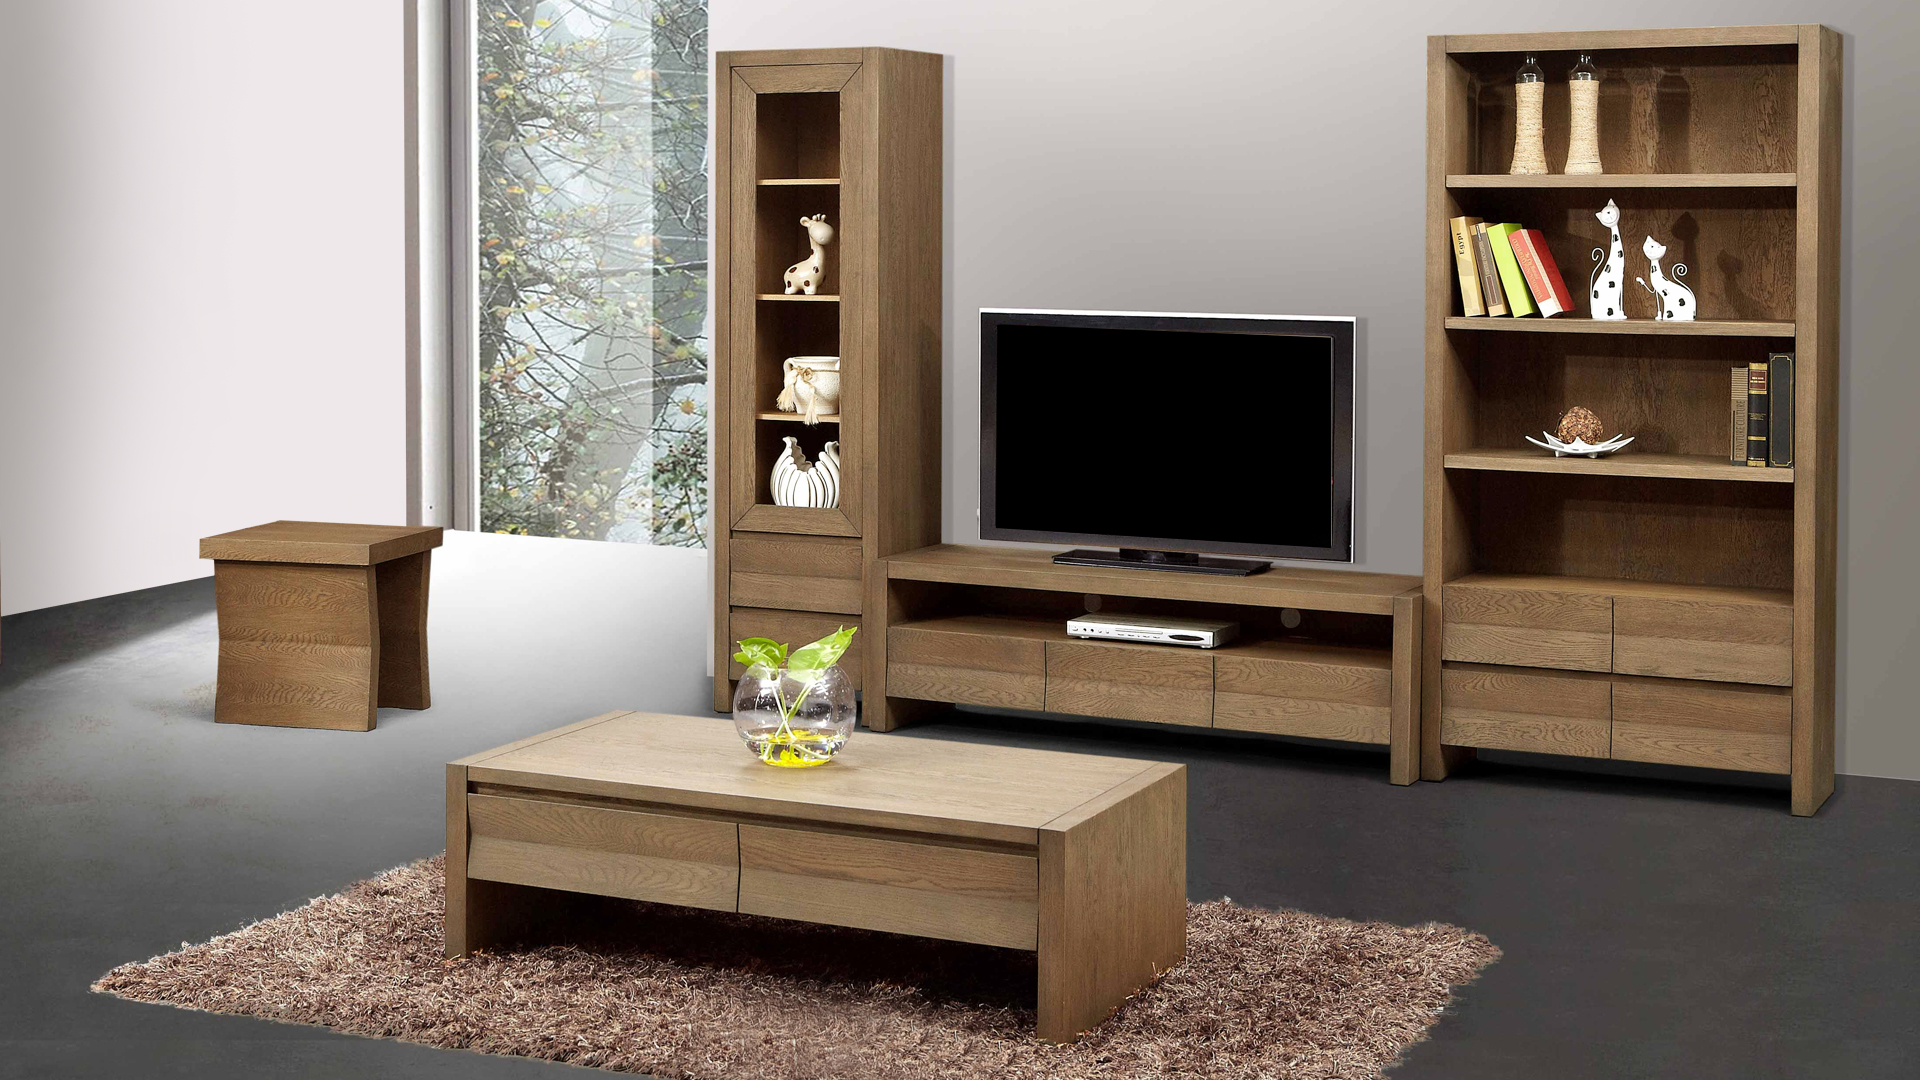 Meuble De Salon En Bois Moderne : salon-bois-ensemble-meubles-collection-vermillon-mobiliermoss-